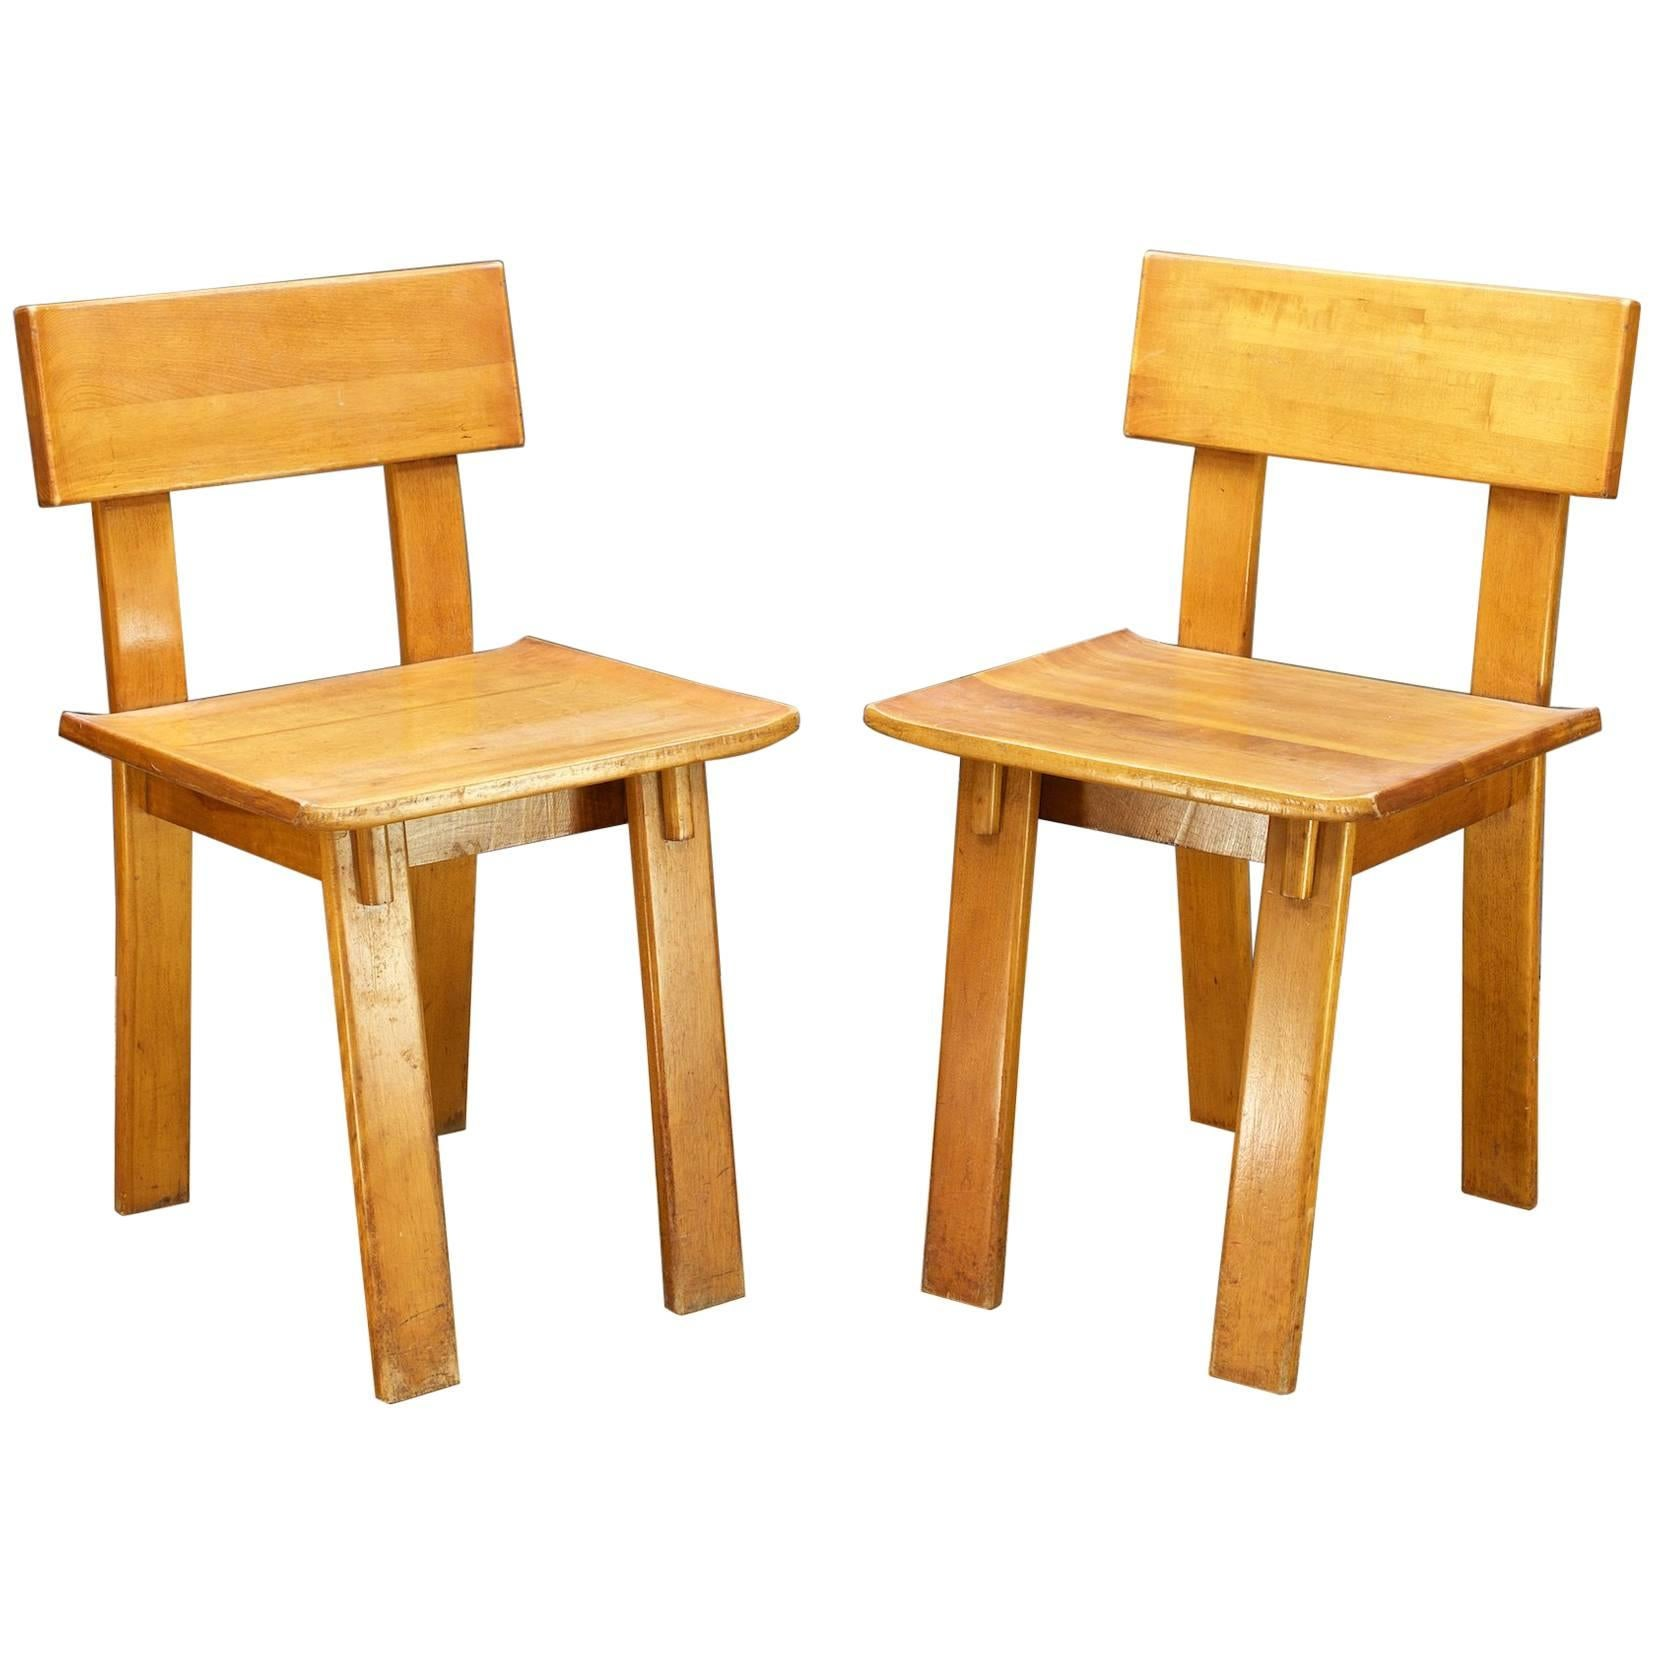 1930s russel wright american modern furniture design chairs georges candilis for sale at 1stdibs